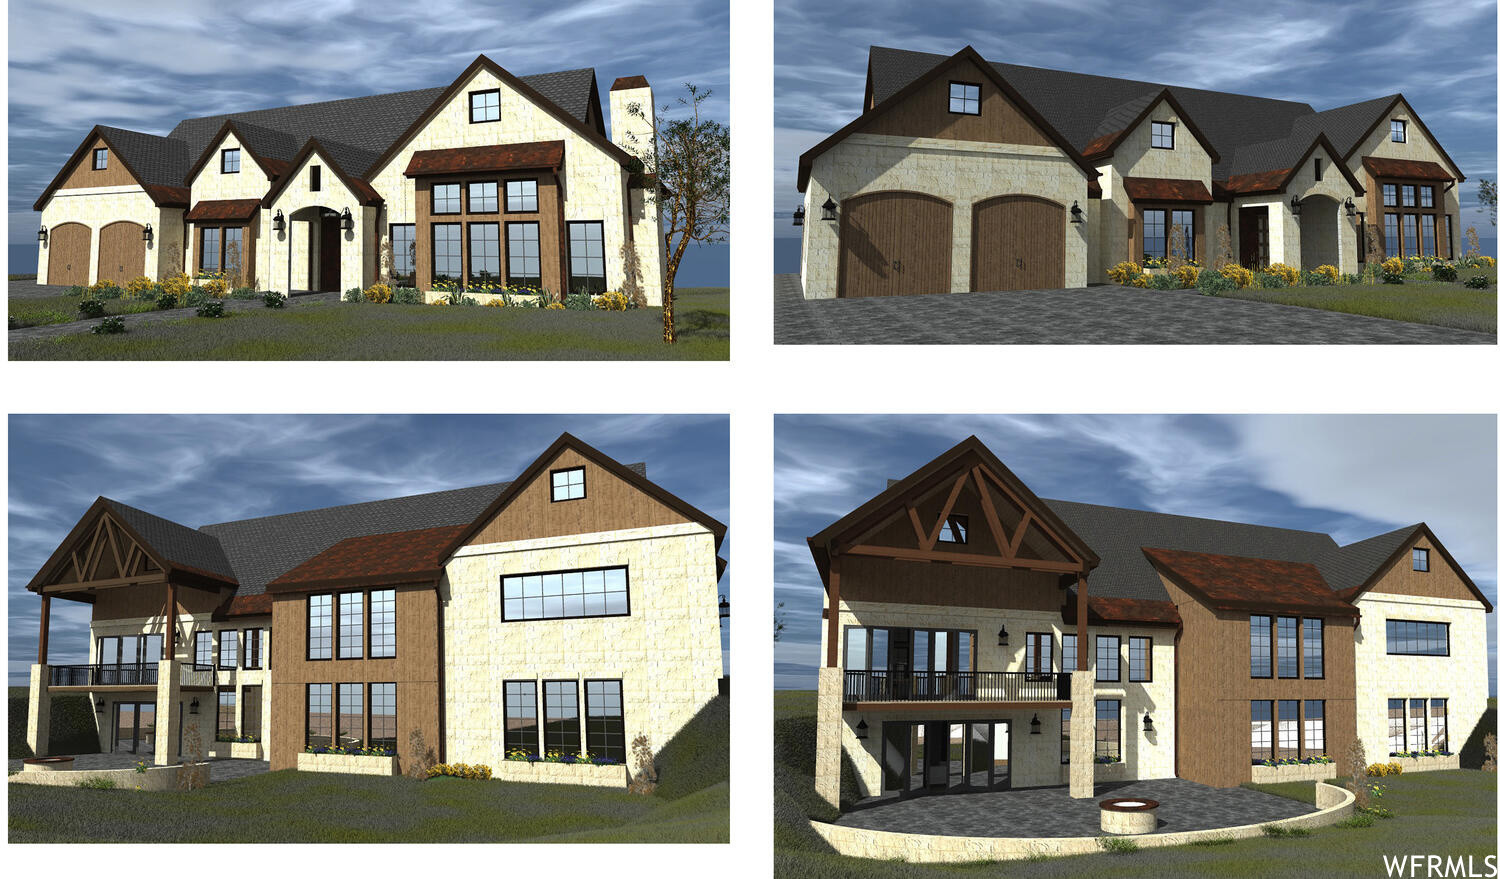 4-Bedroom House In Cascades At Soldier Hollow